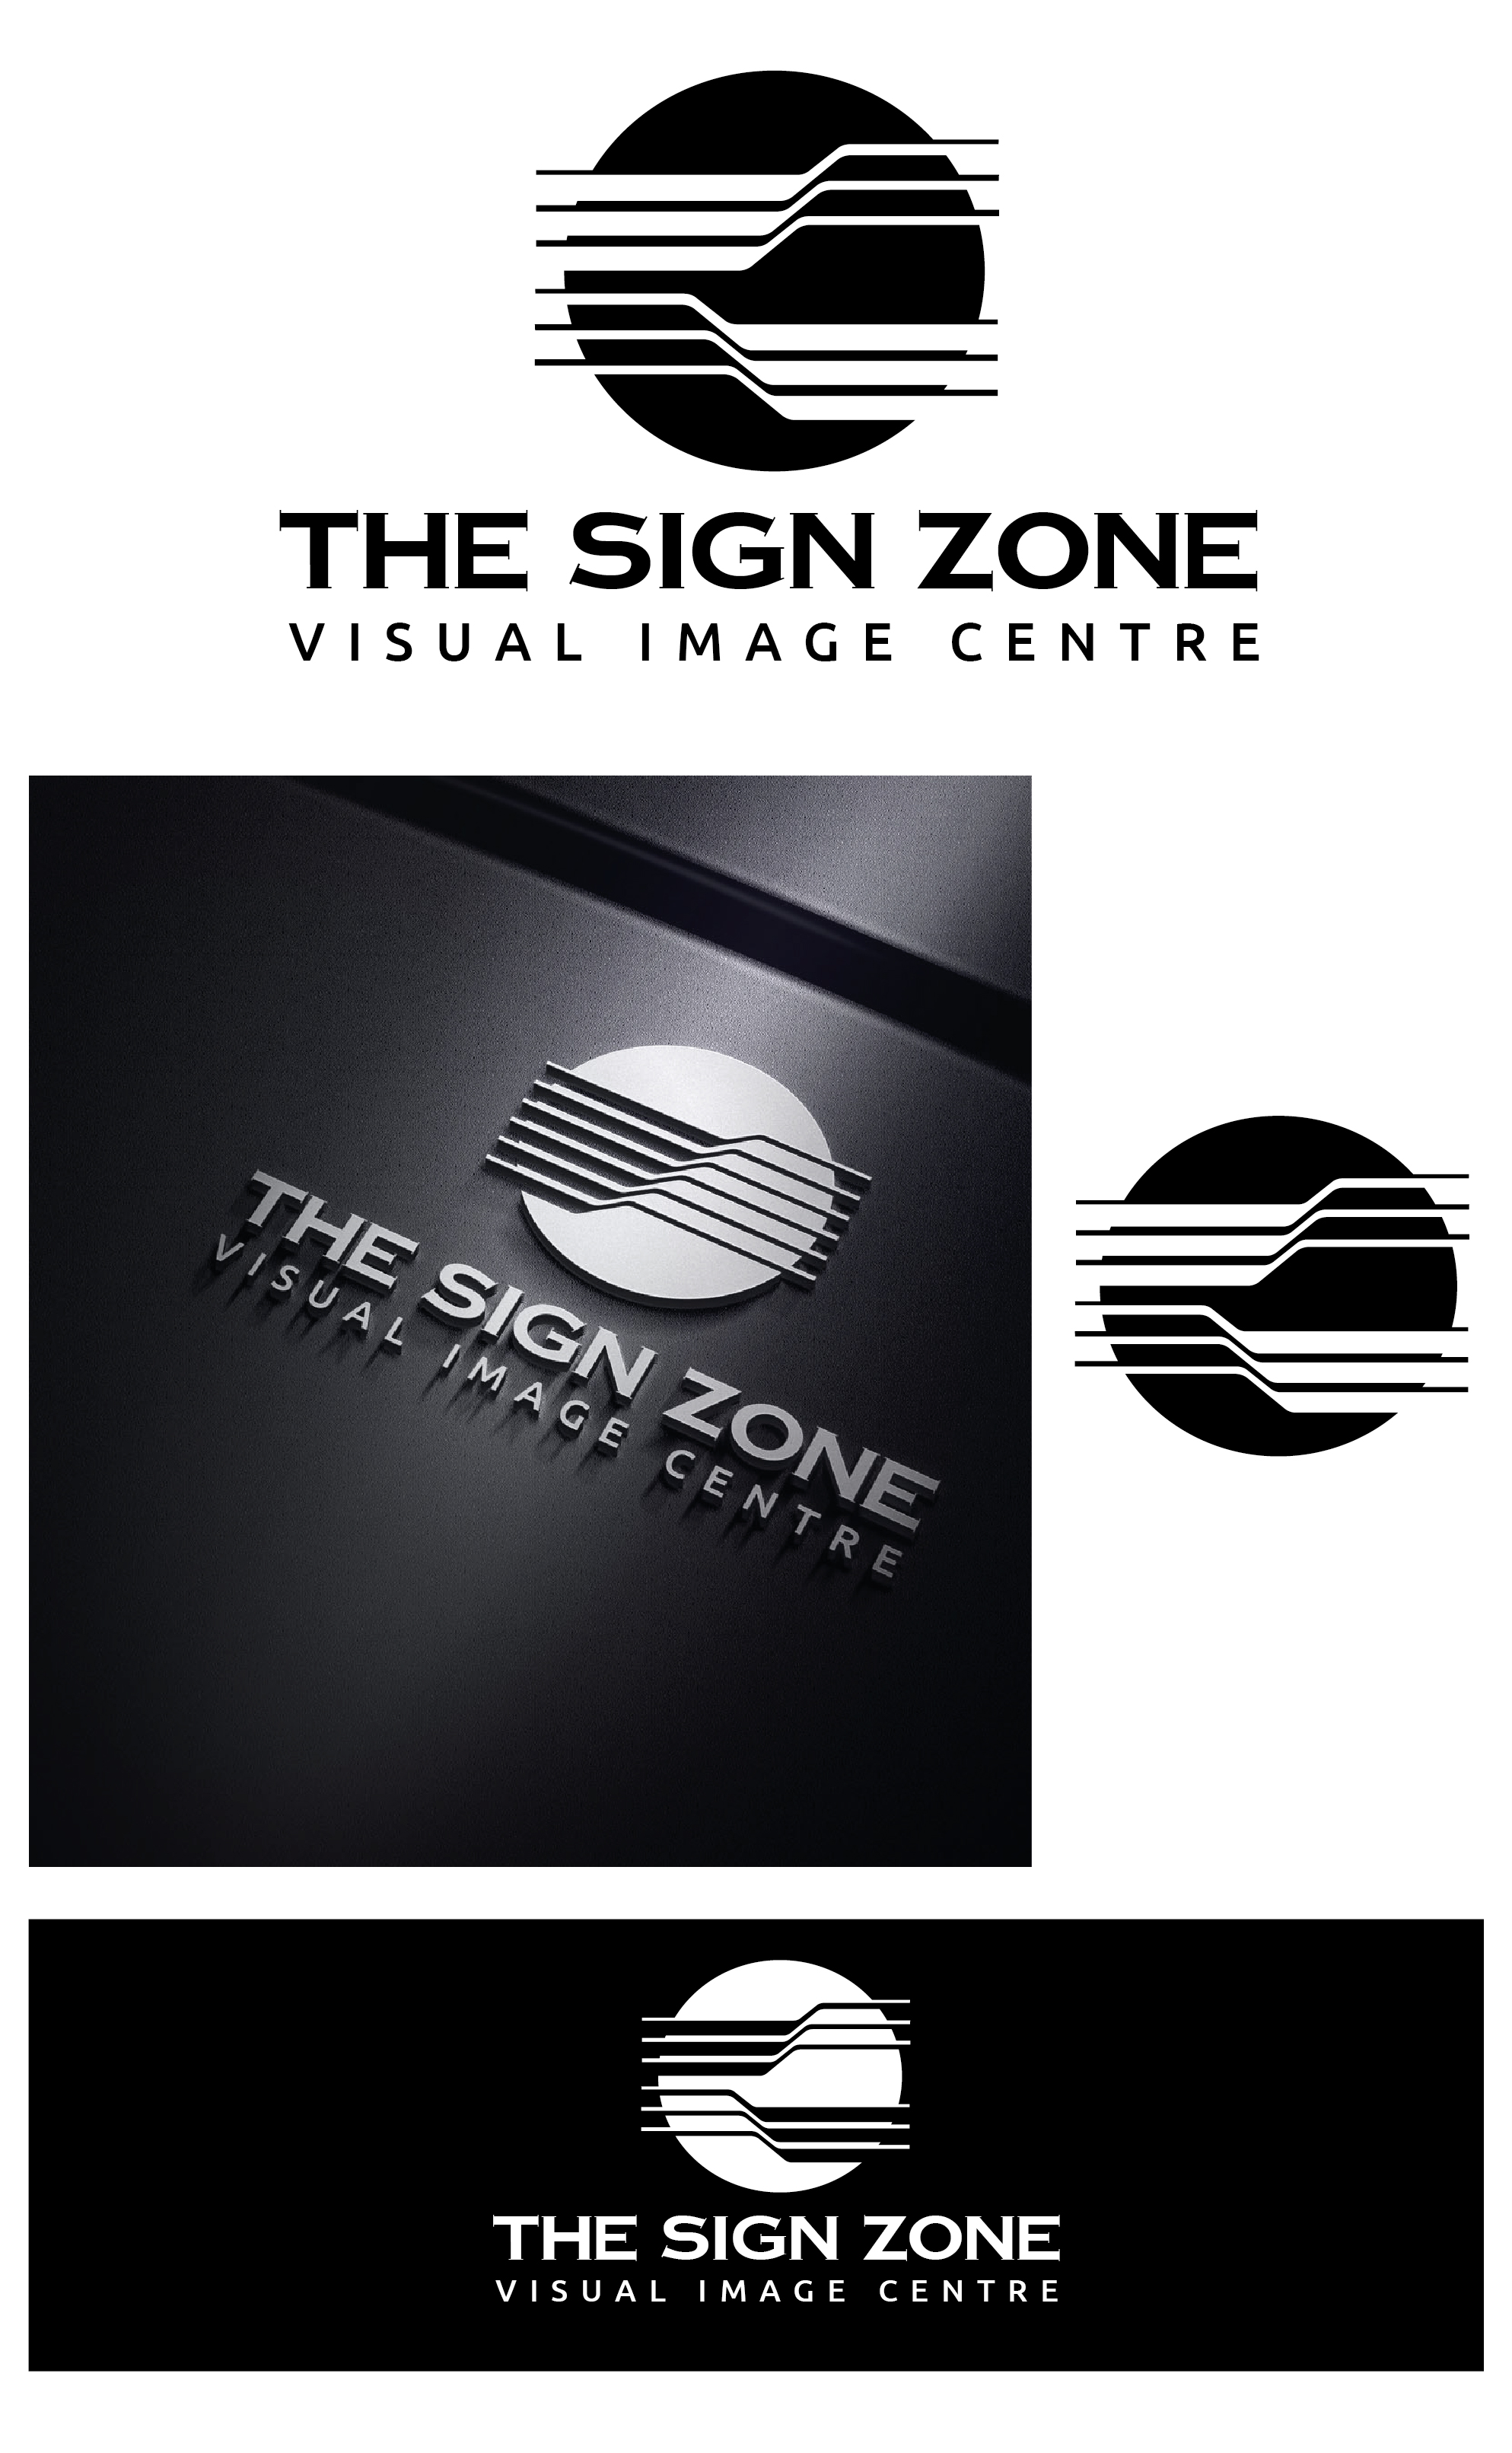 Logo Design by VENTSISLAV KOVACHEV - Entry No. 121 in the Logo Design Contest Fun Logo Design for The Sign Zone.